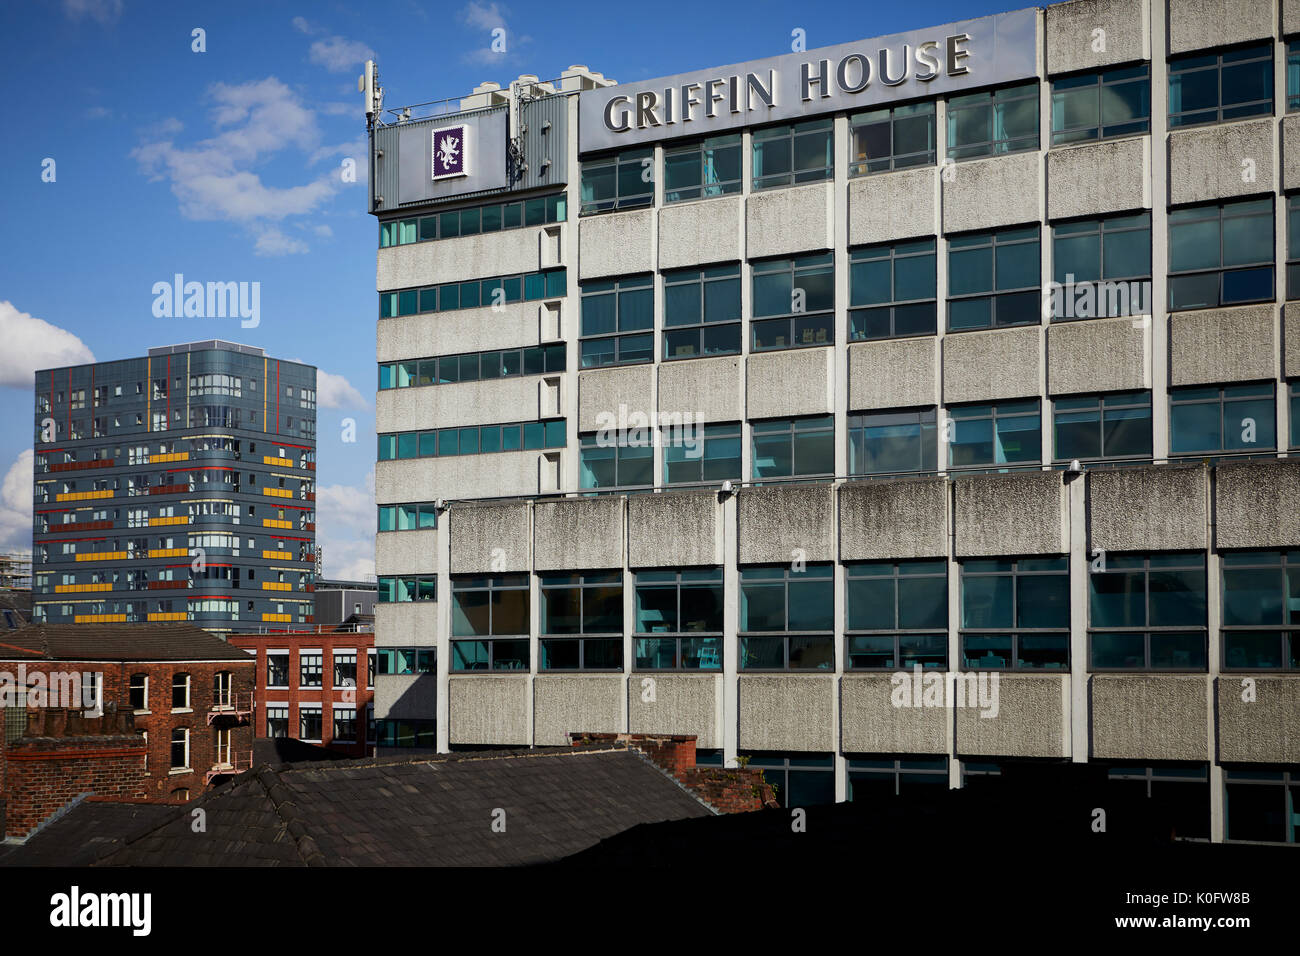 Manchester Northern Quarter , Griffin House home of the catalogue giants JD Williams  on Lever Street. - Stock Image